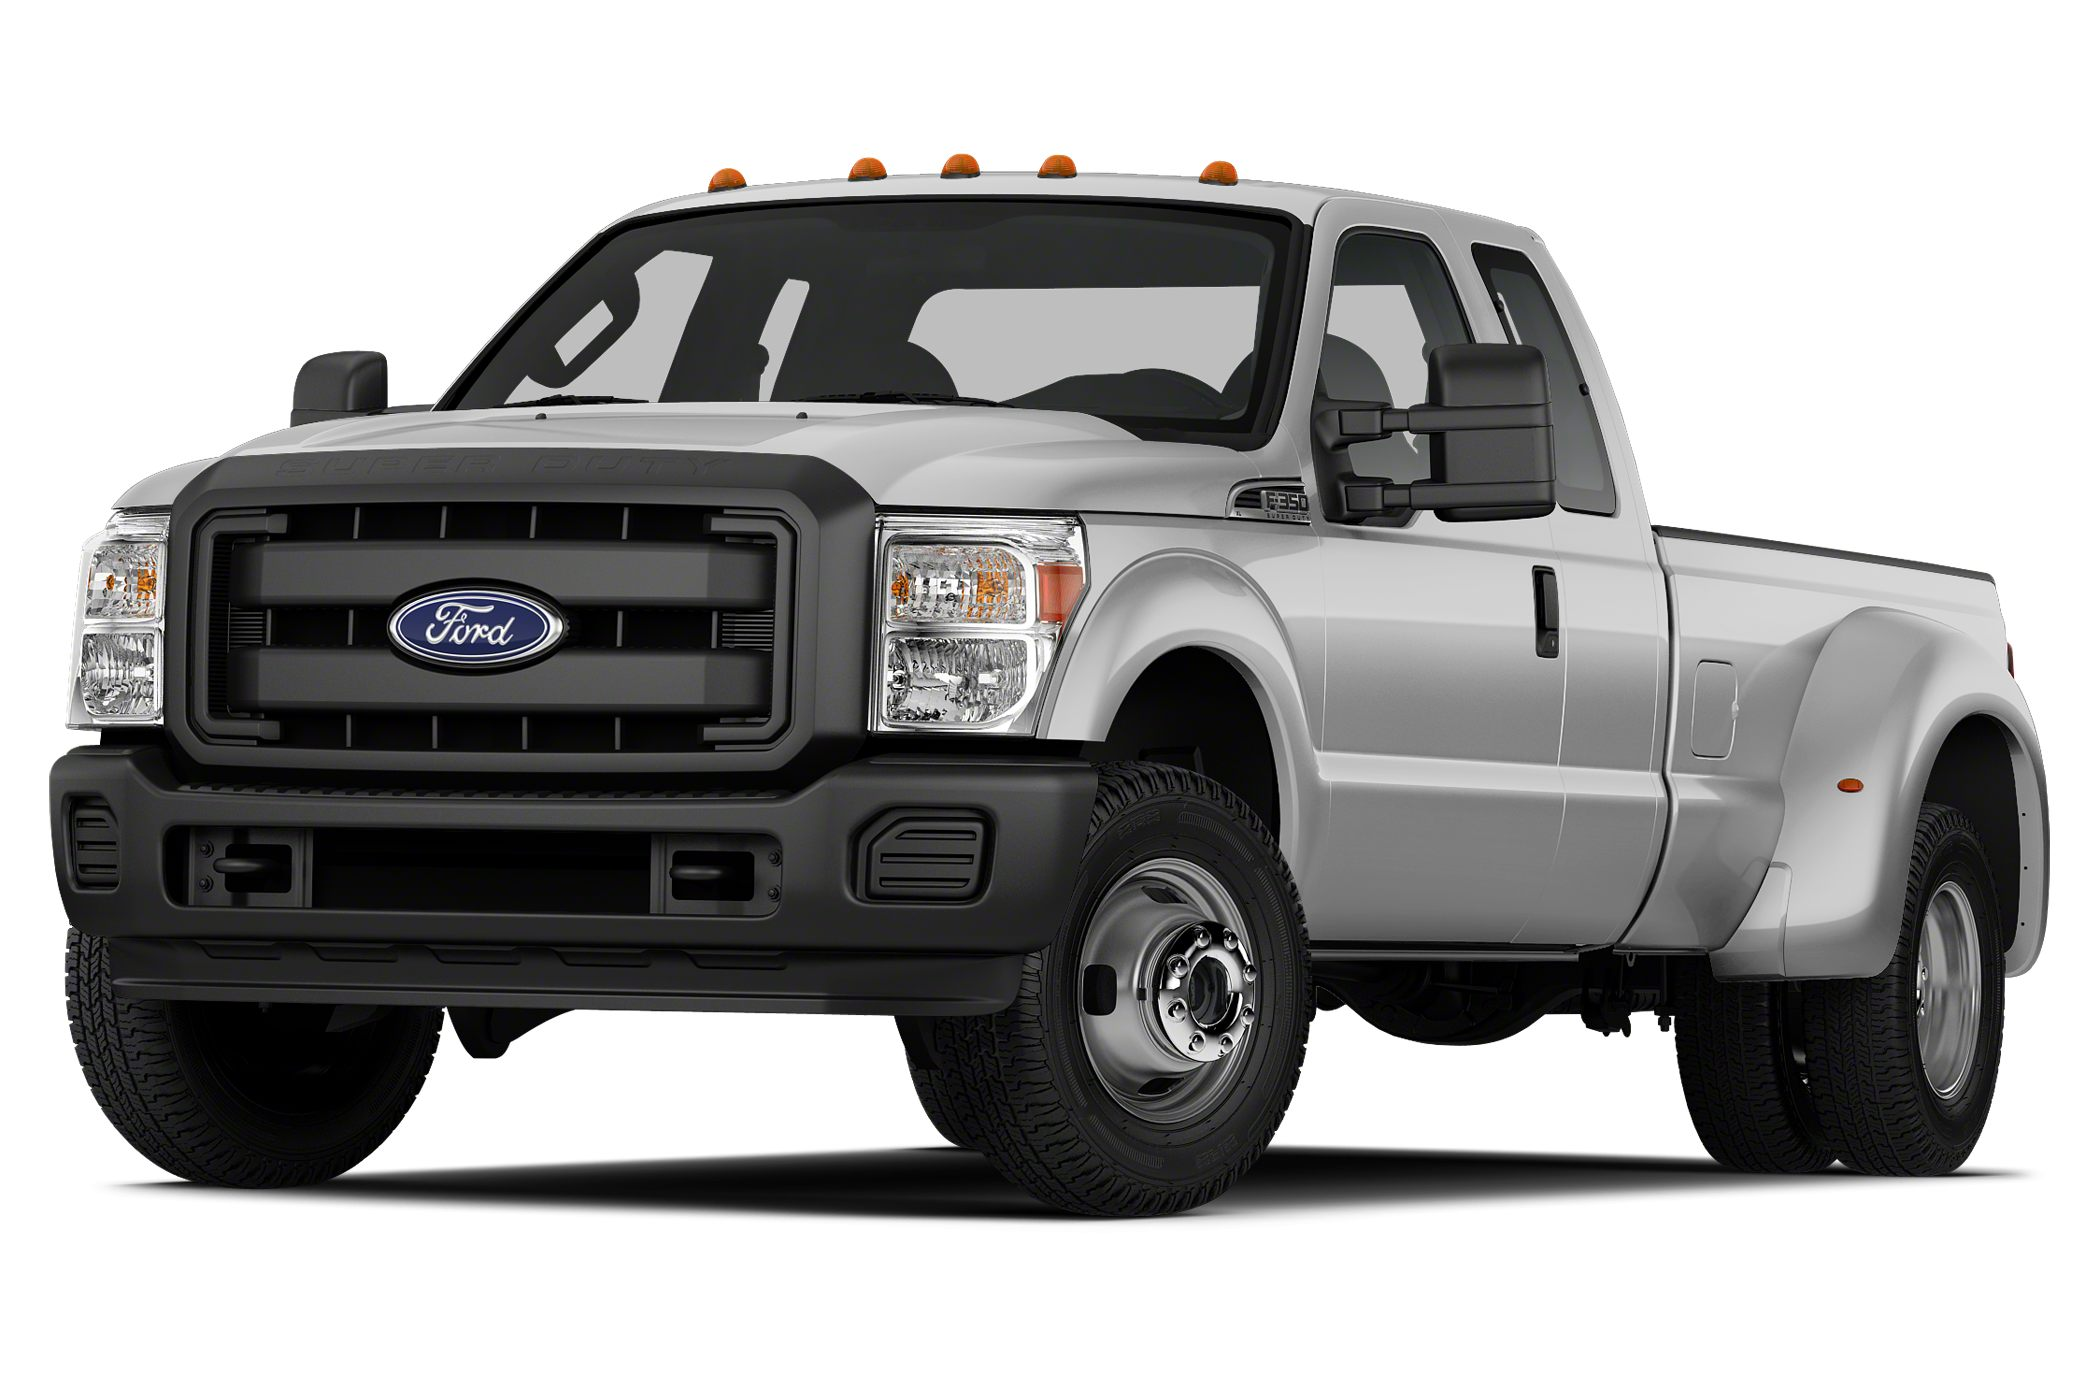 2014 Ford F350 Lariat Crew Cab Pickup for sale in Brooklyn for $52,700 with 10,772 miles